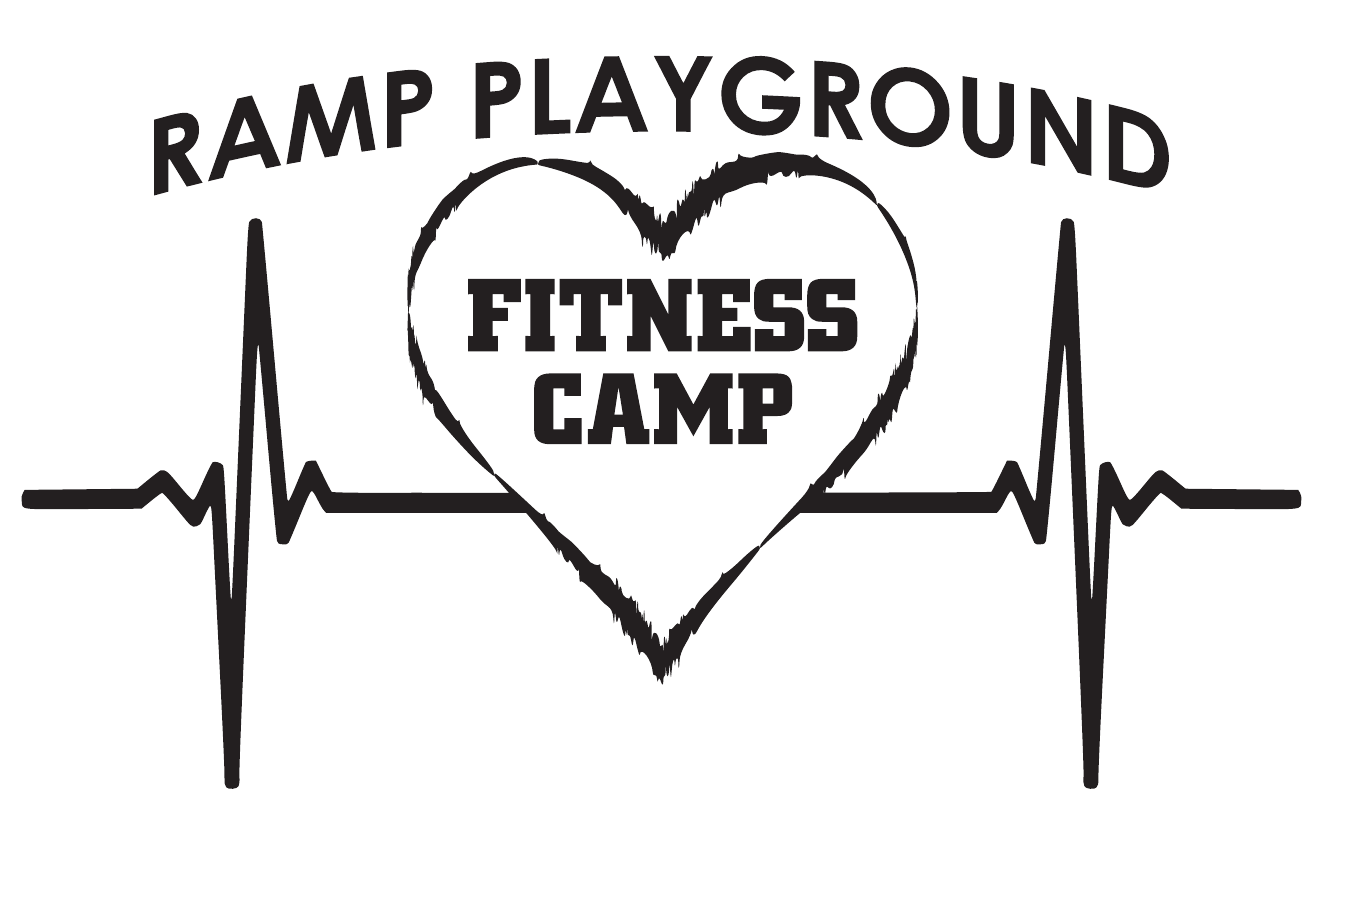 Ramp Playground Fitness Camp